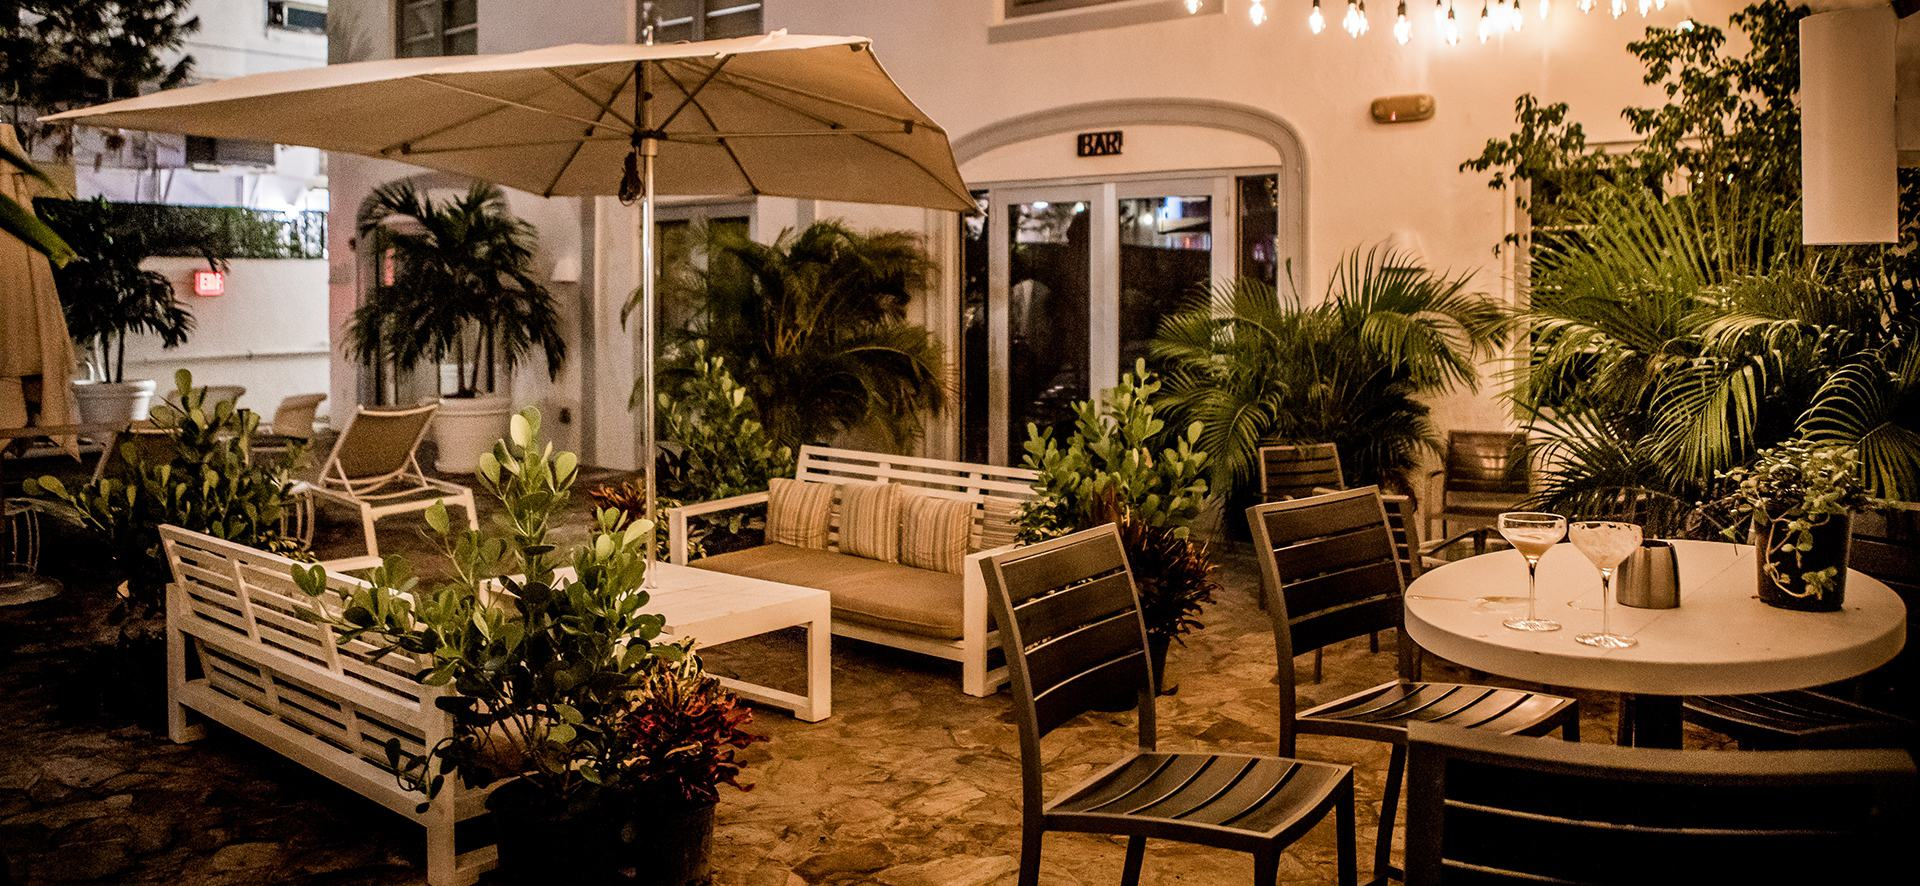 miami beach open patio speakeasy local craft coctail bar open late 305